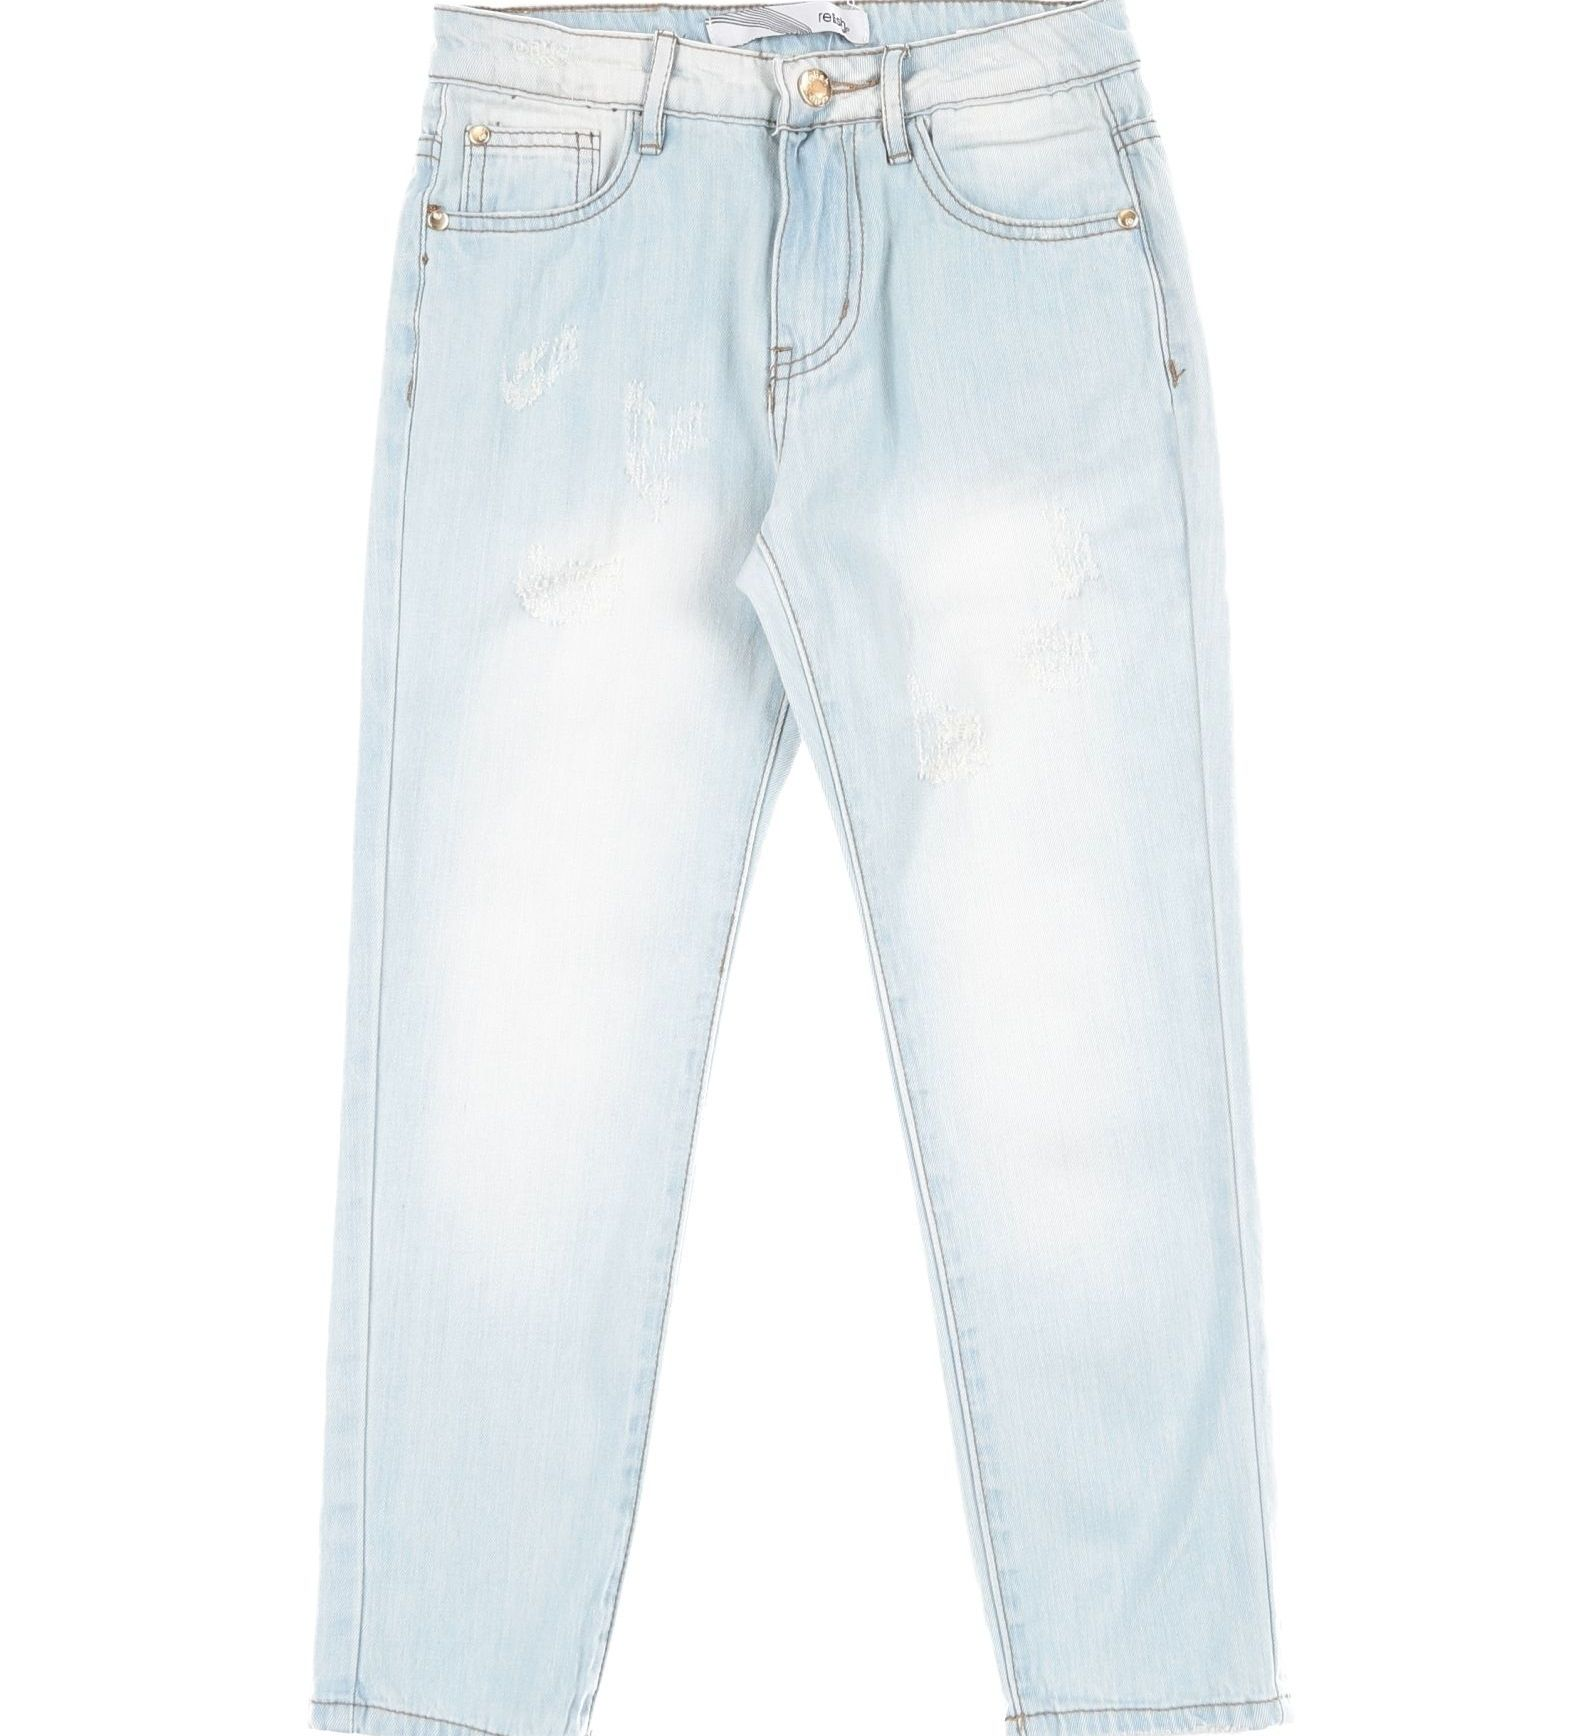 RELISH DENIM Τζιν